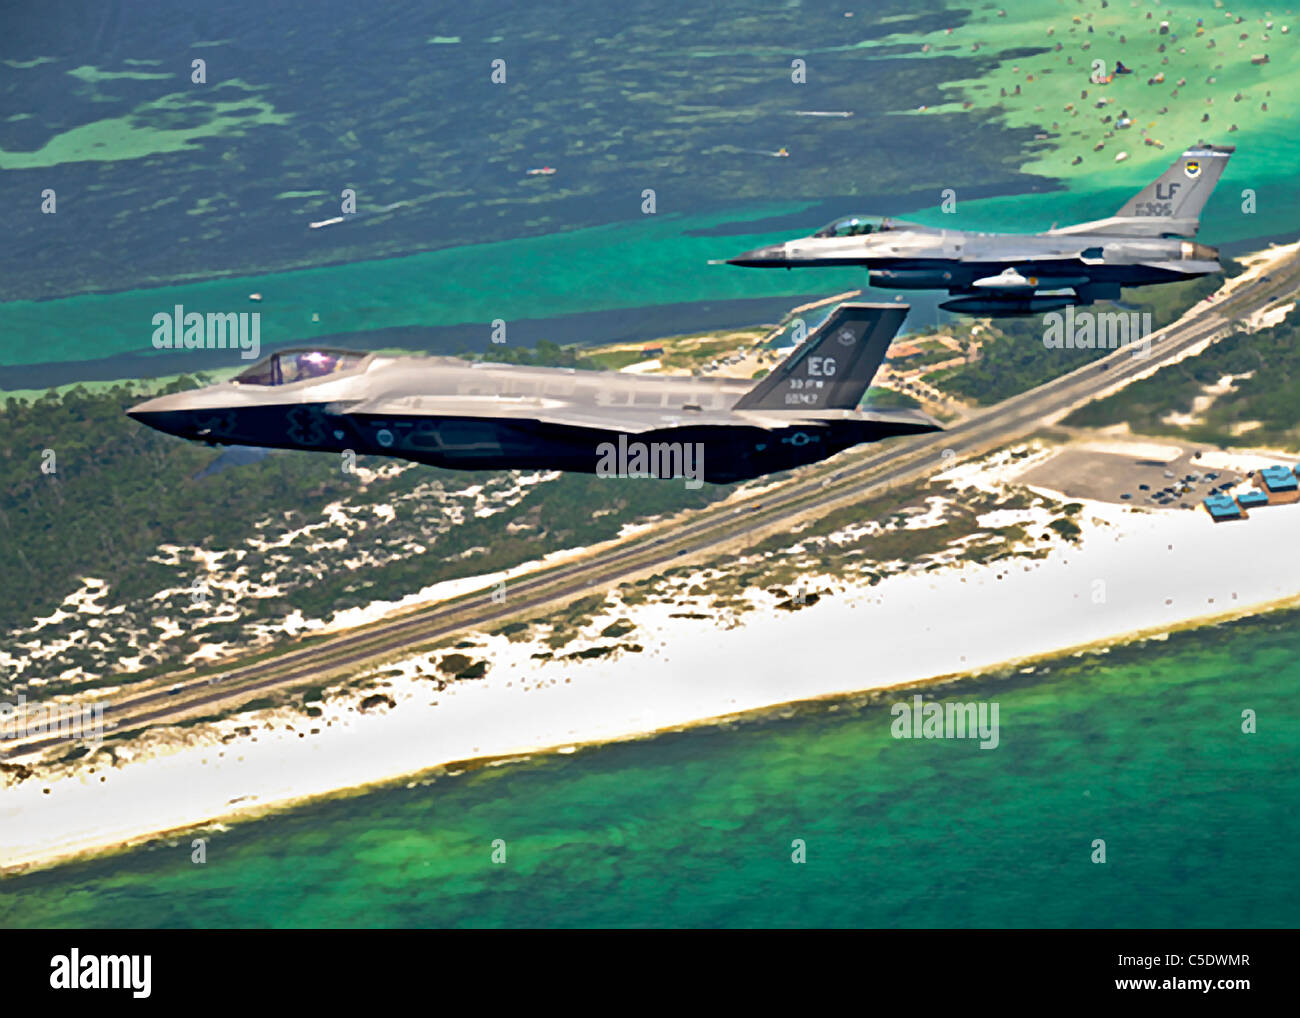 F-35 Joint Strike Fighter Lighting II flying above the coast of Florida - Stock Image